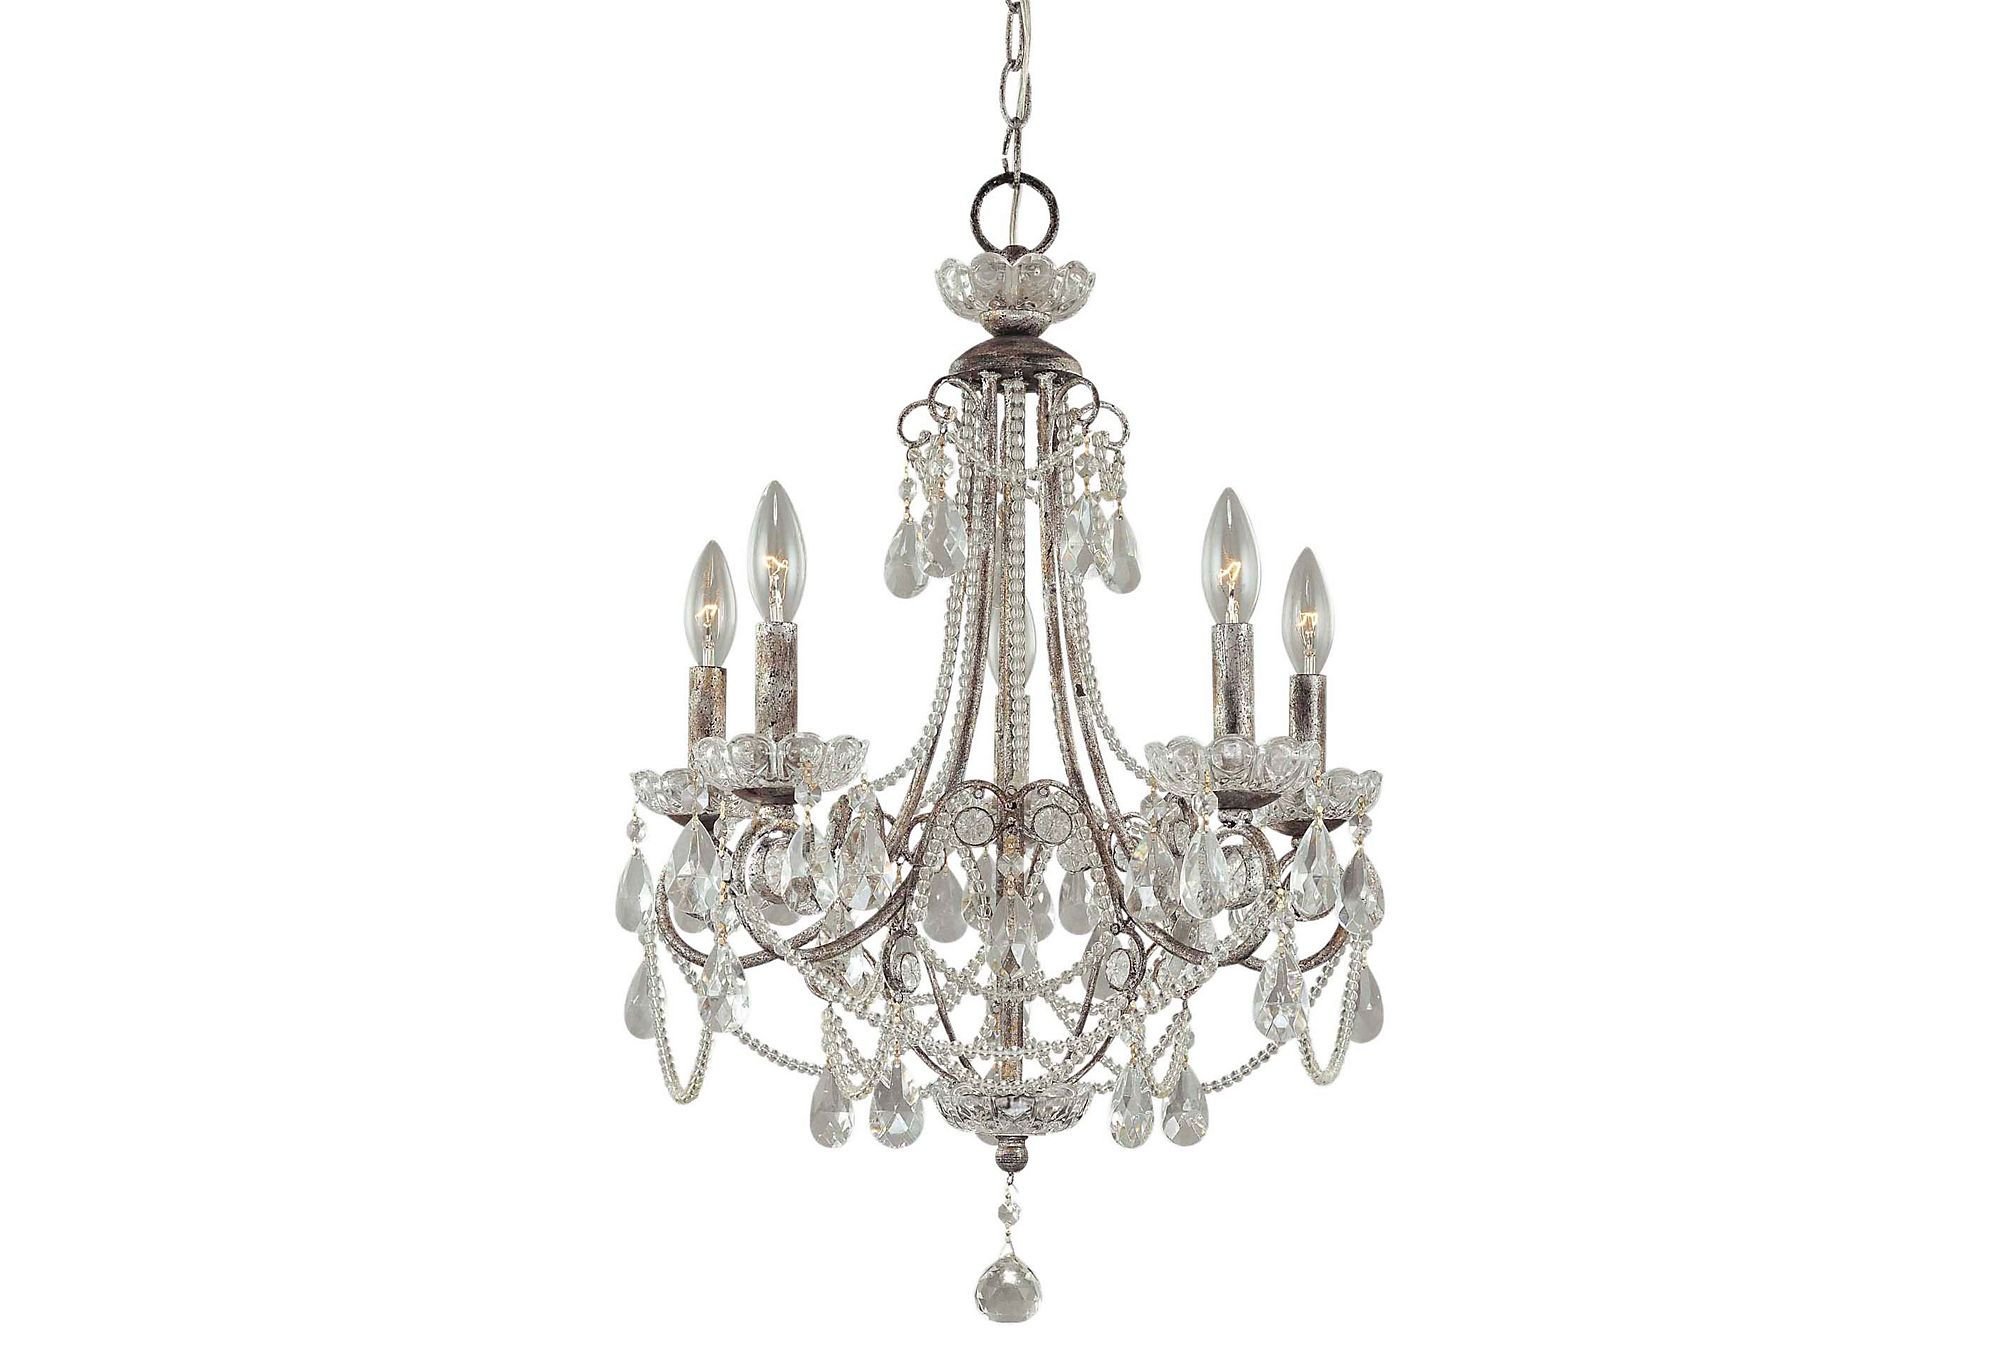 Princess sara 5 light mini chandelier silver layer your look princess sara 5 light mini chandelier silver layer your look one kings arubaitofo Images